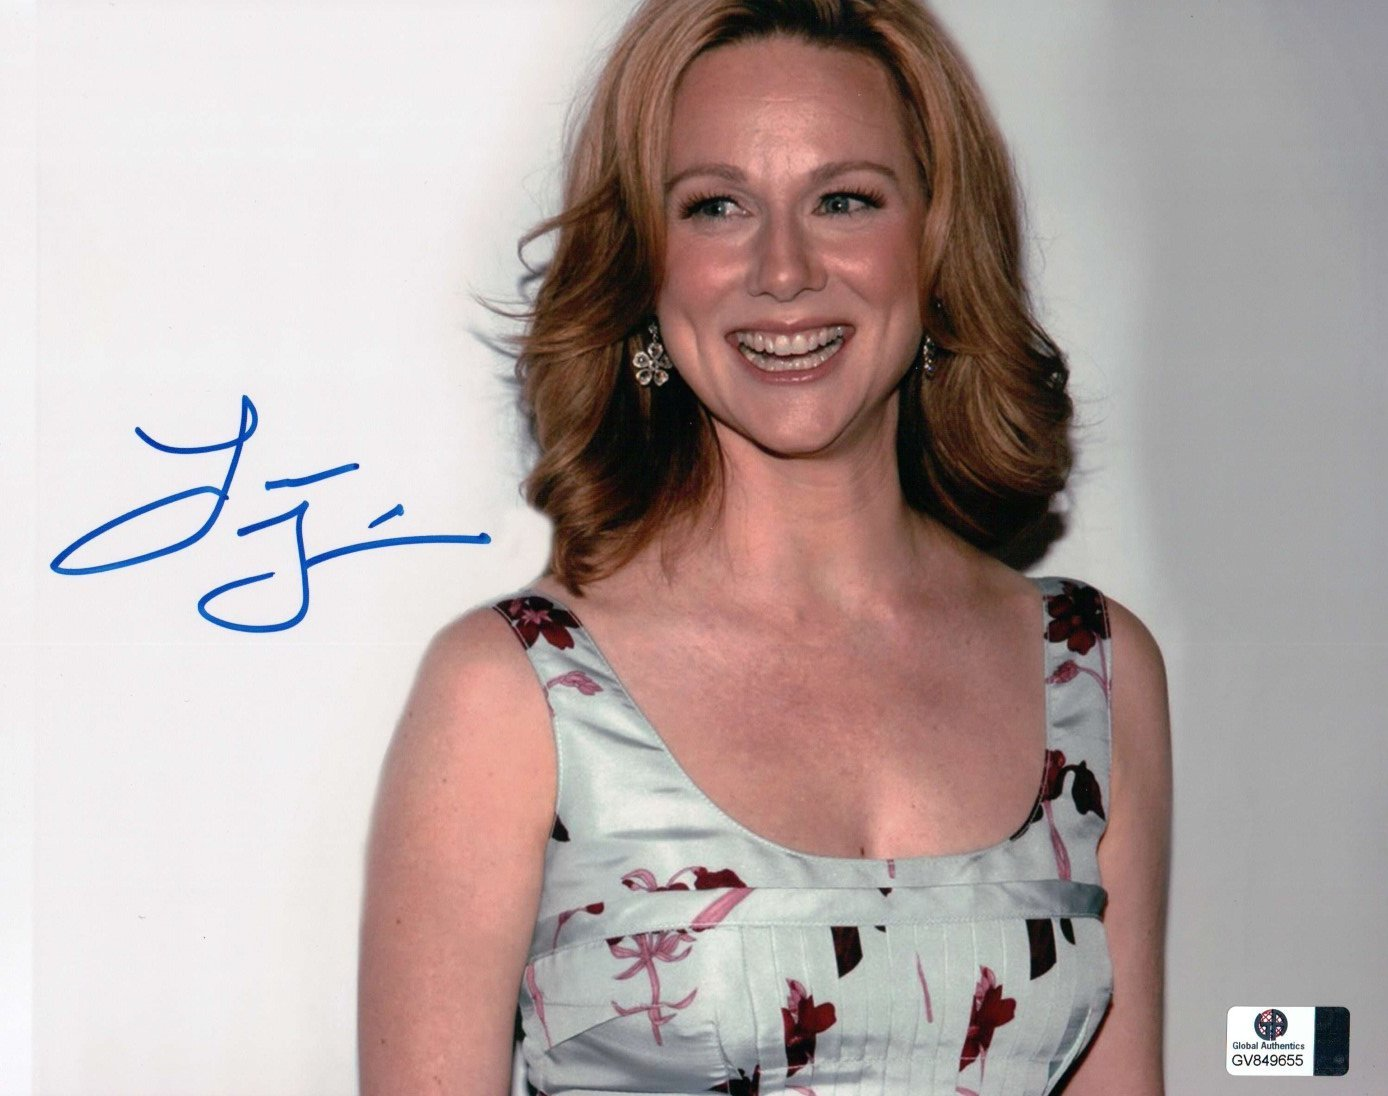 Laura Linney Signed Autographed 8X10 Photo Sexy Cute Smiling GV849655 at  Amazon's Entertainment Collectibles Store